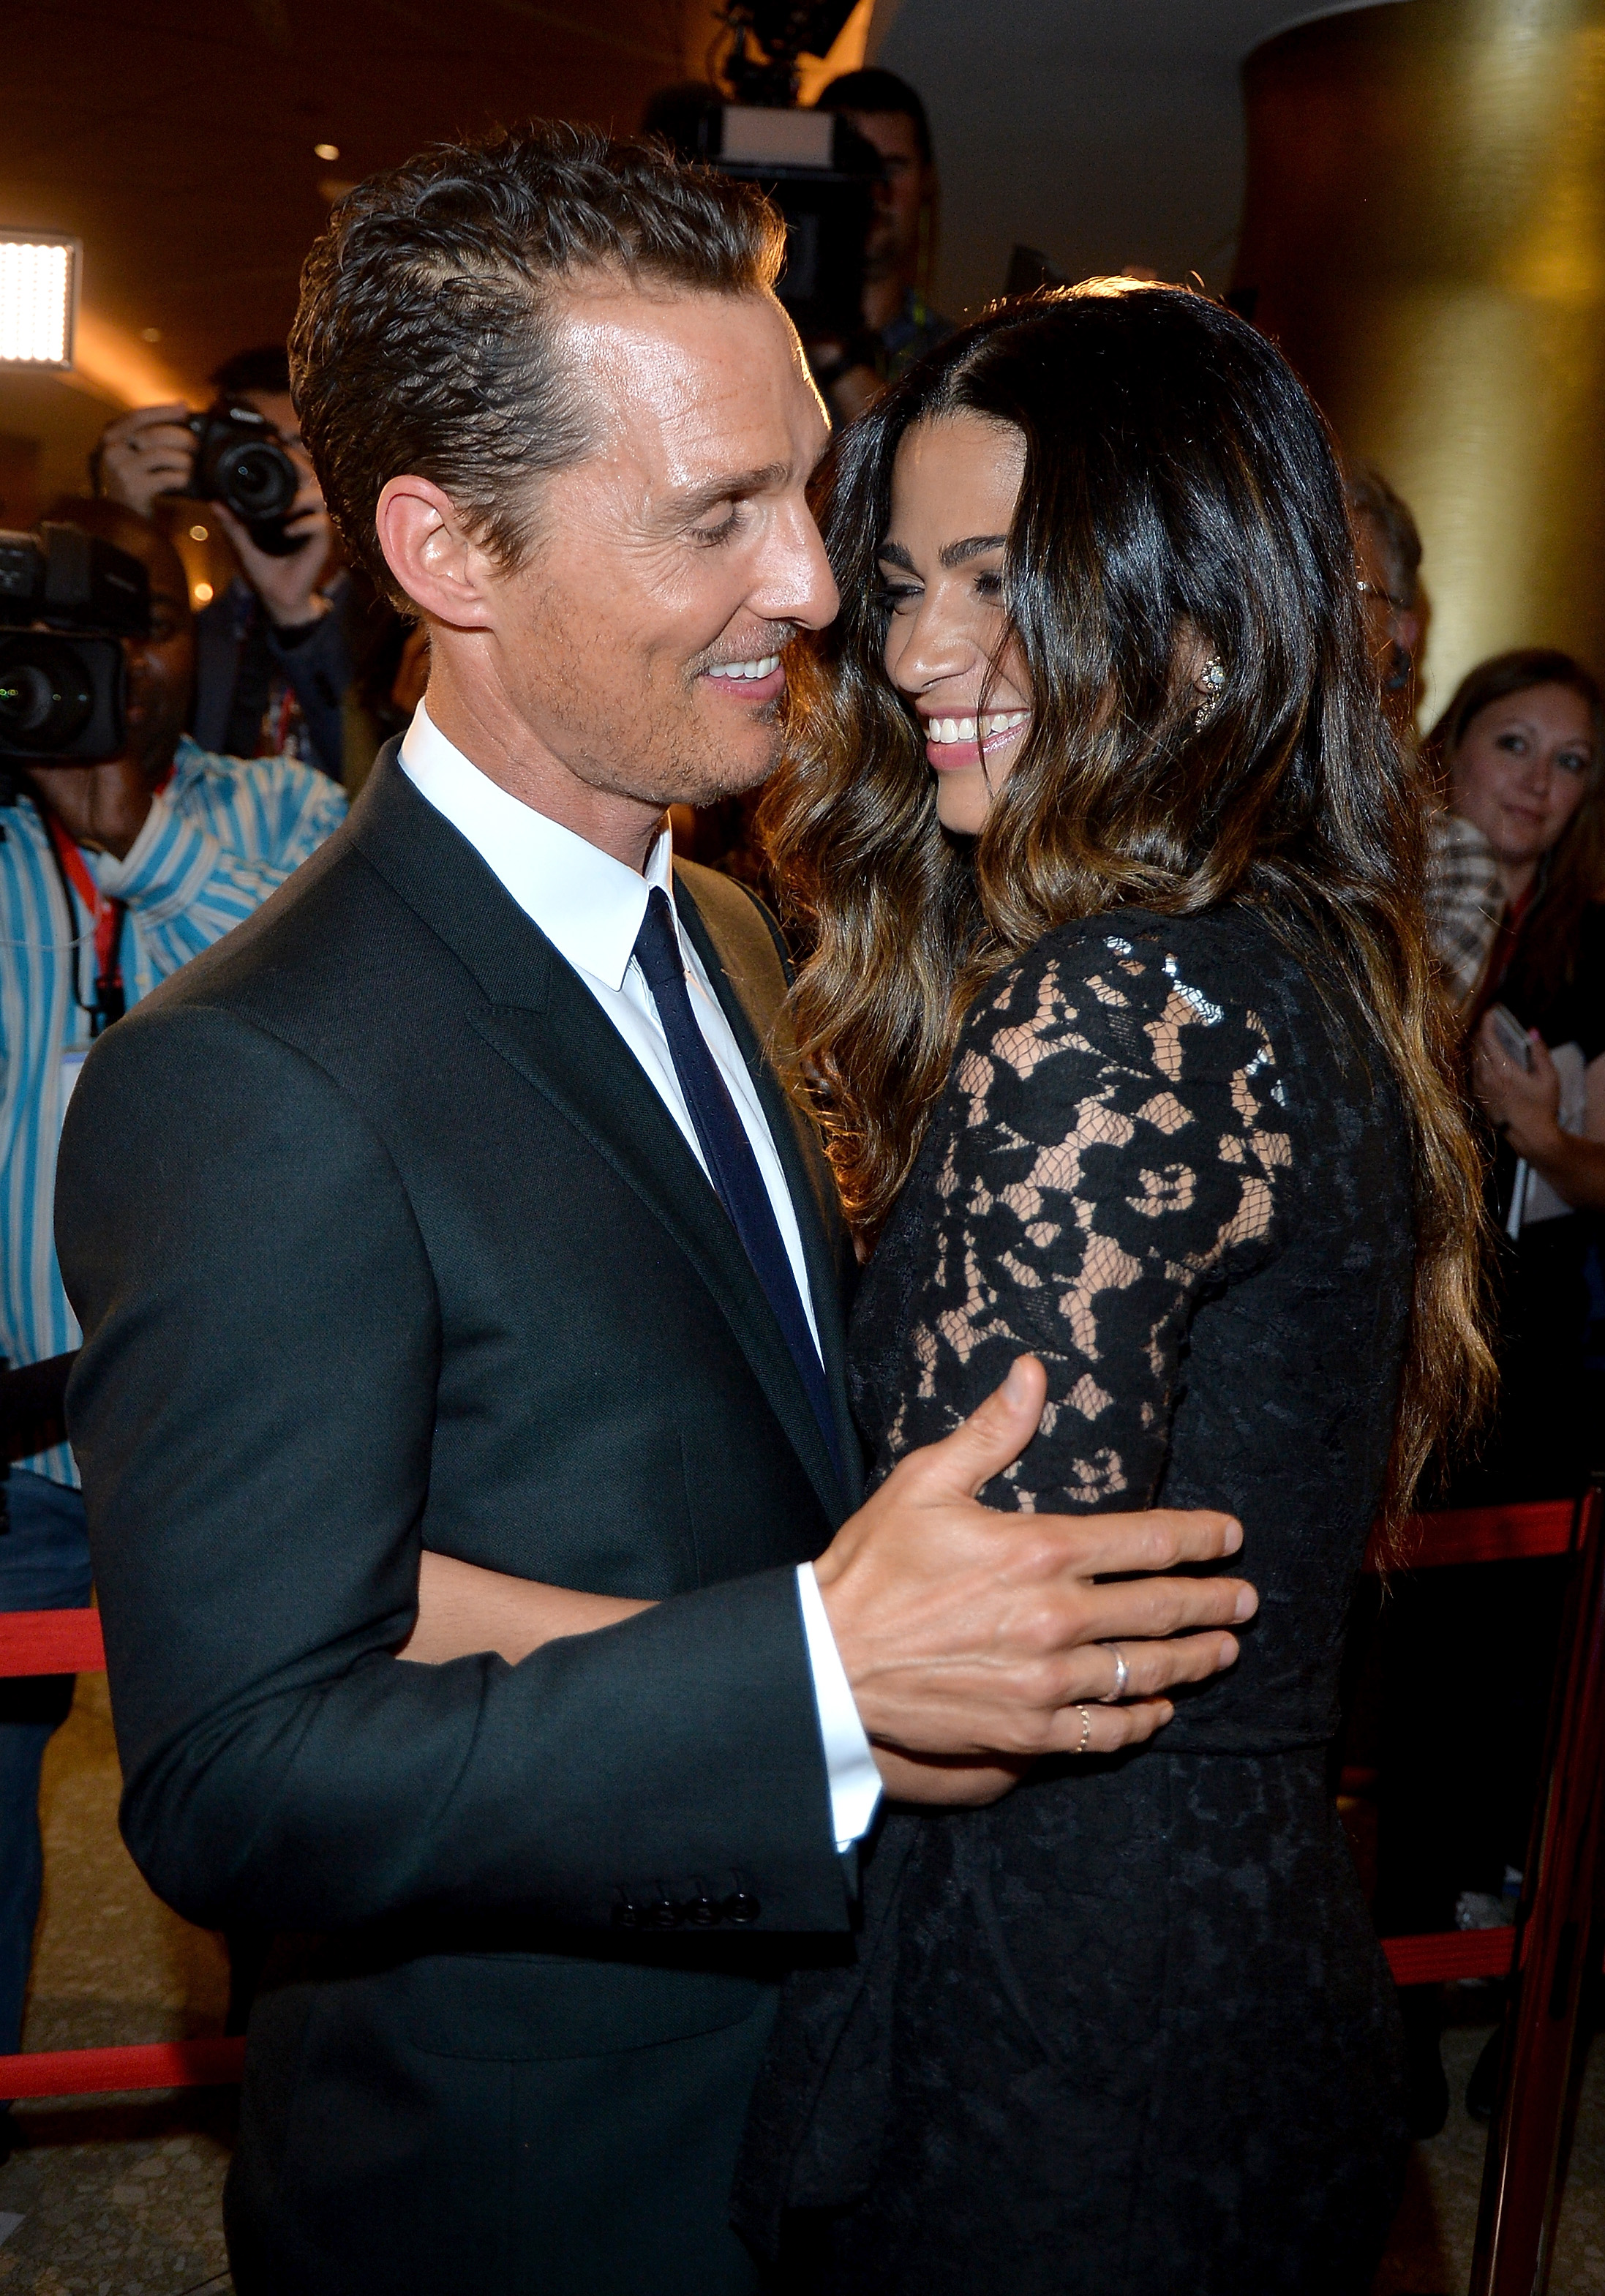 Matthew McConaughey with wife Camila Alves at TIFF premiere of 'Dallas Buyers Club' (WireImage)